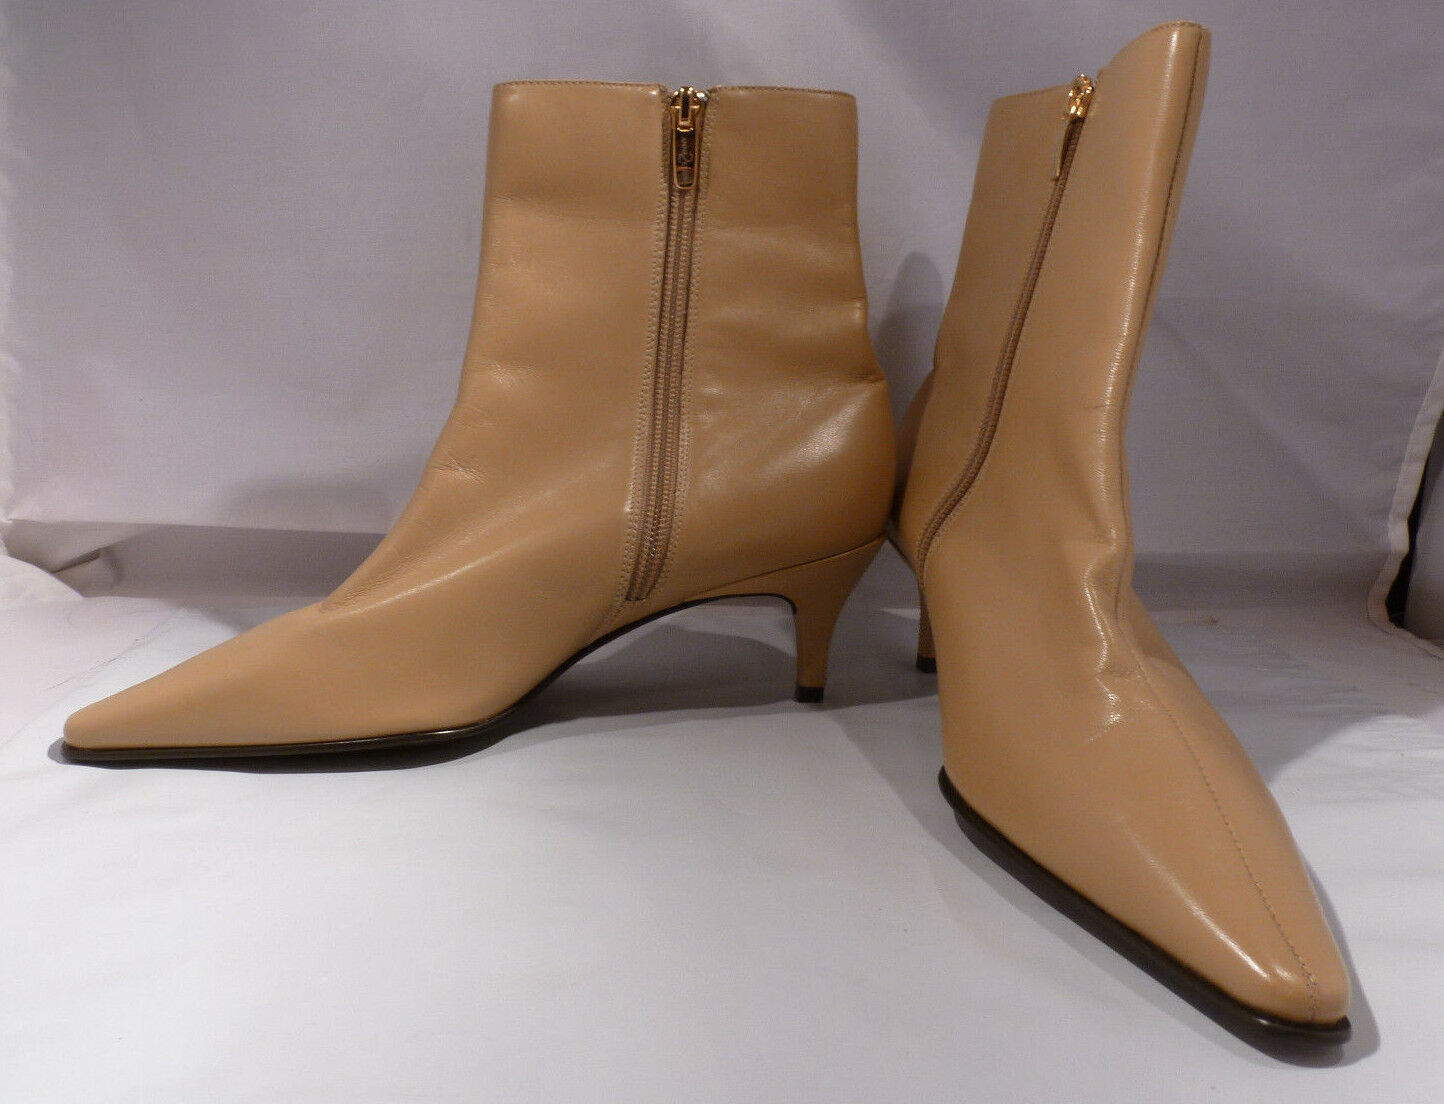 New Anne Klein 2 Taupe Leather Ankle Boot Size 7 1/2 M Low Heel